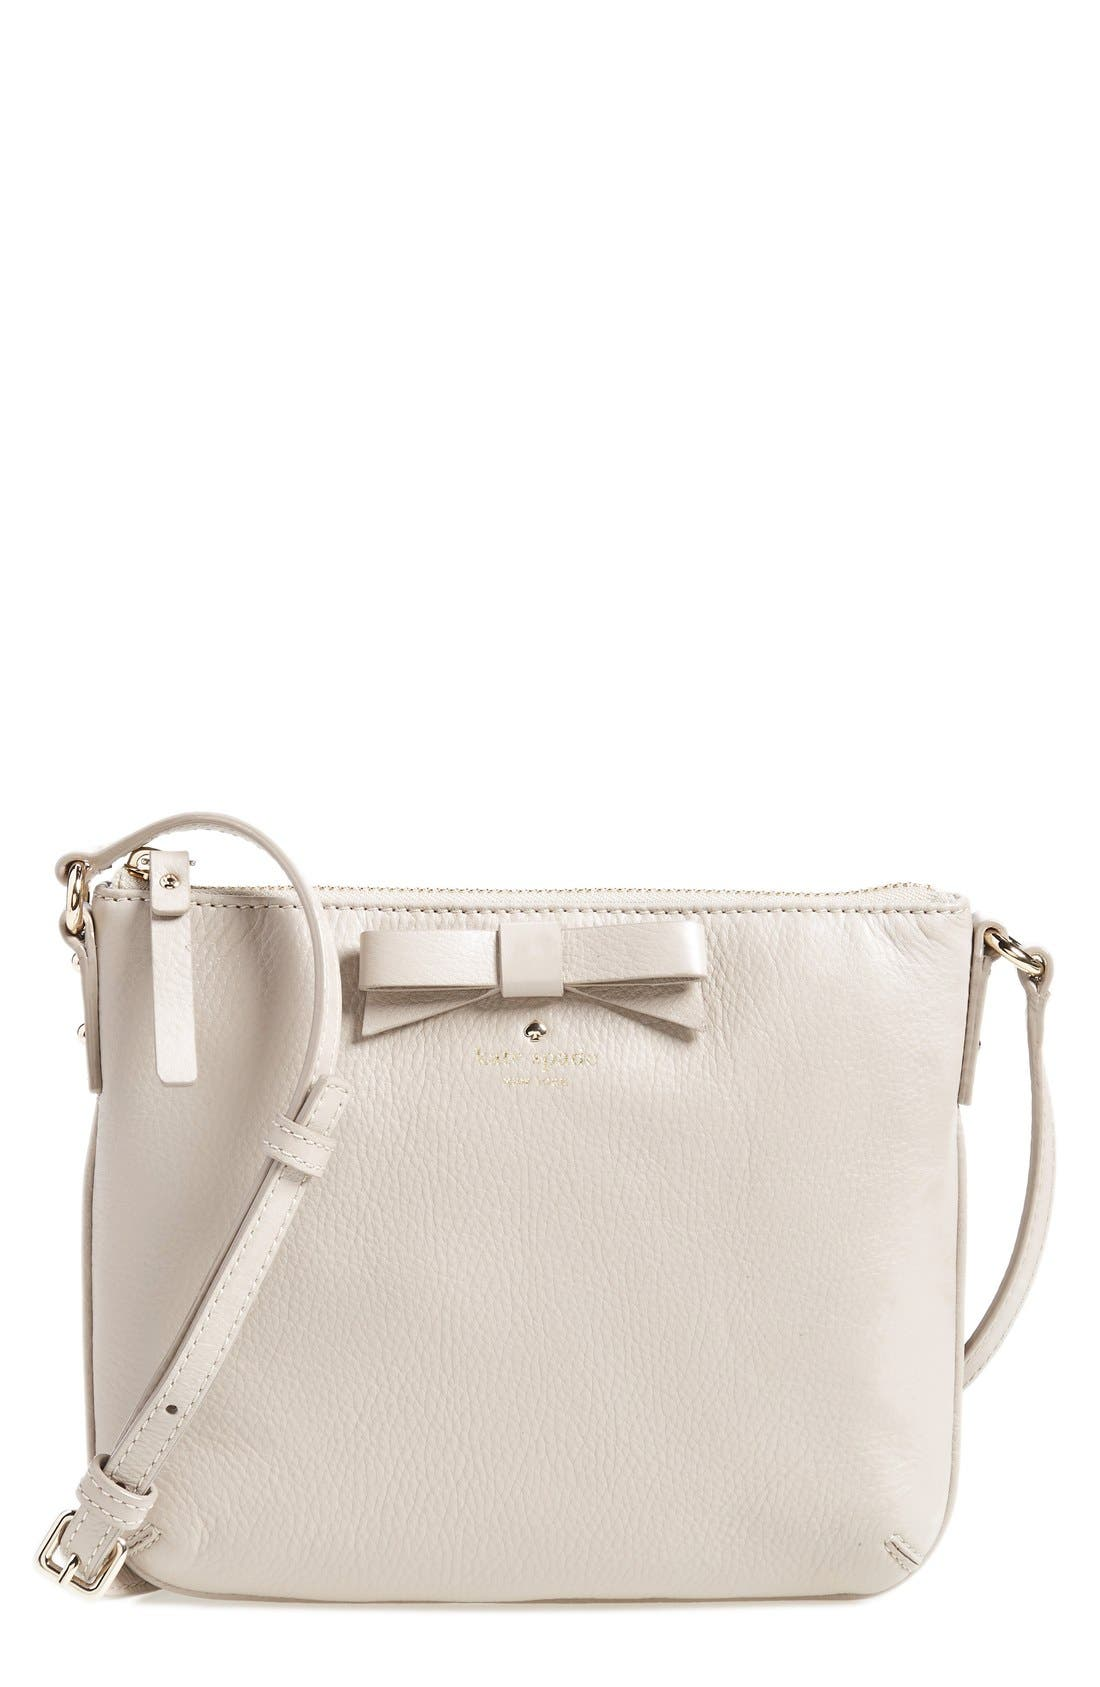 Alternate Image 1 Selected - kate spade new york 'north court - bow tenley' pebbled leather crossbody bag (Nordstrom Exclusive)